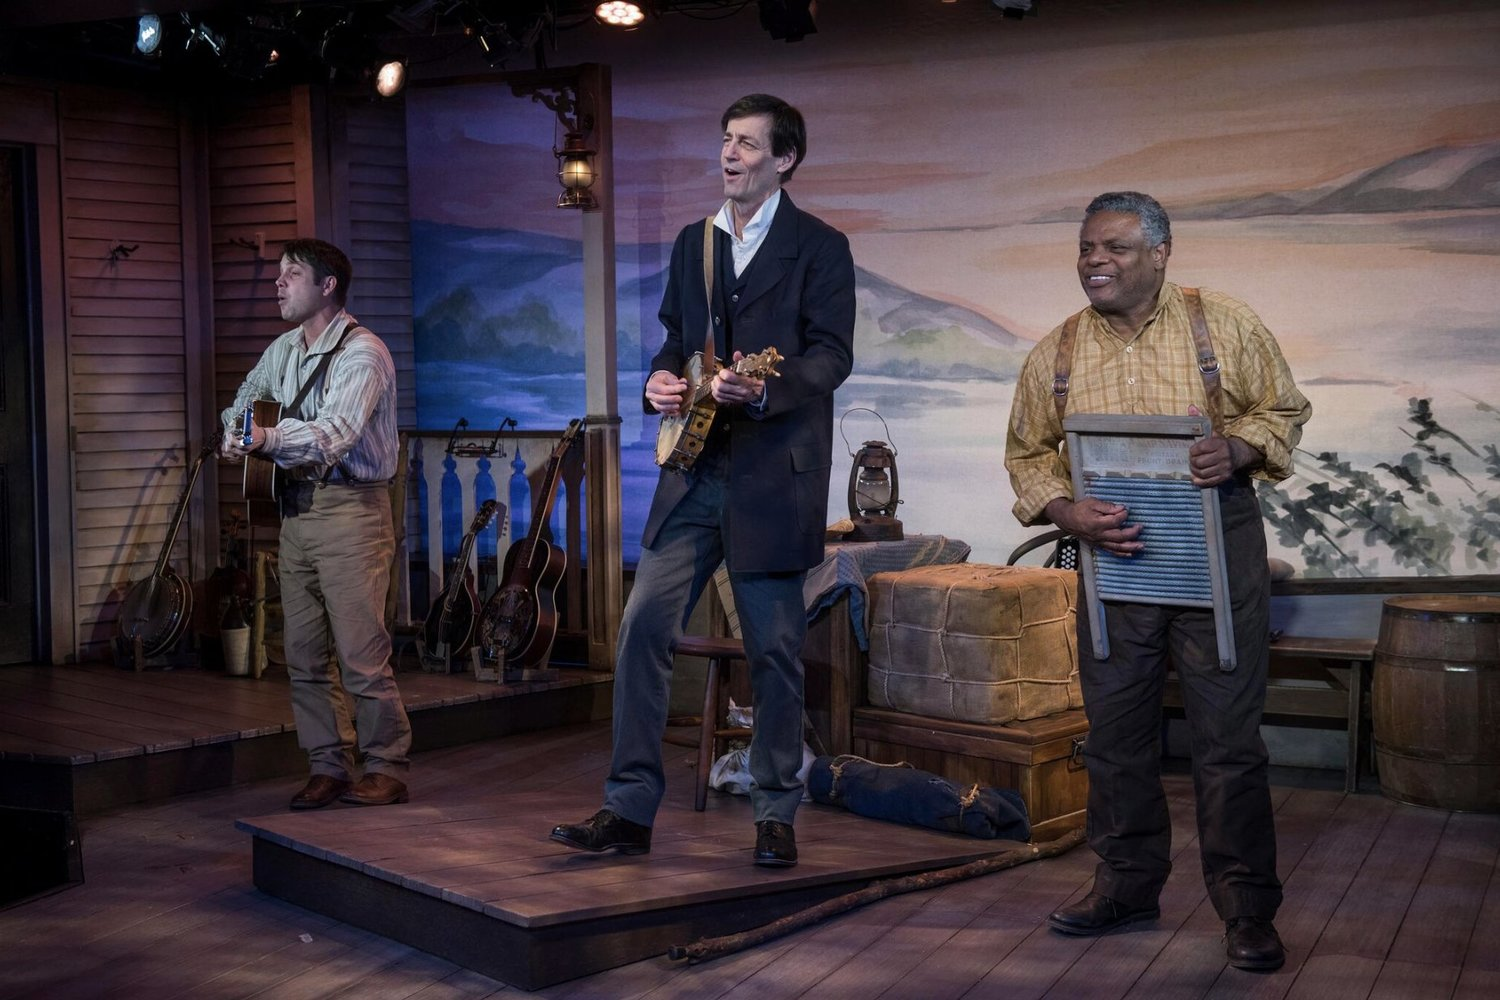 BWW Review: MARK TWAIN'S RIVER OF SONG Soothes & Inspires  at the Milwaukee Repertory Theater